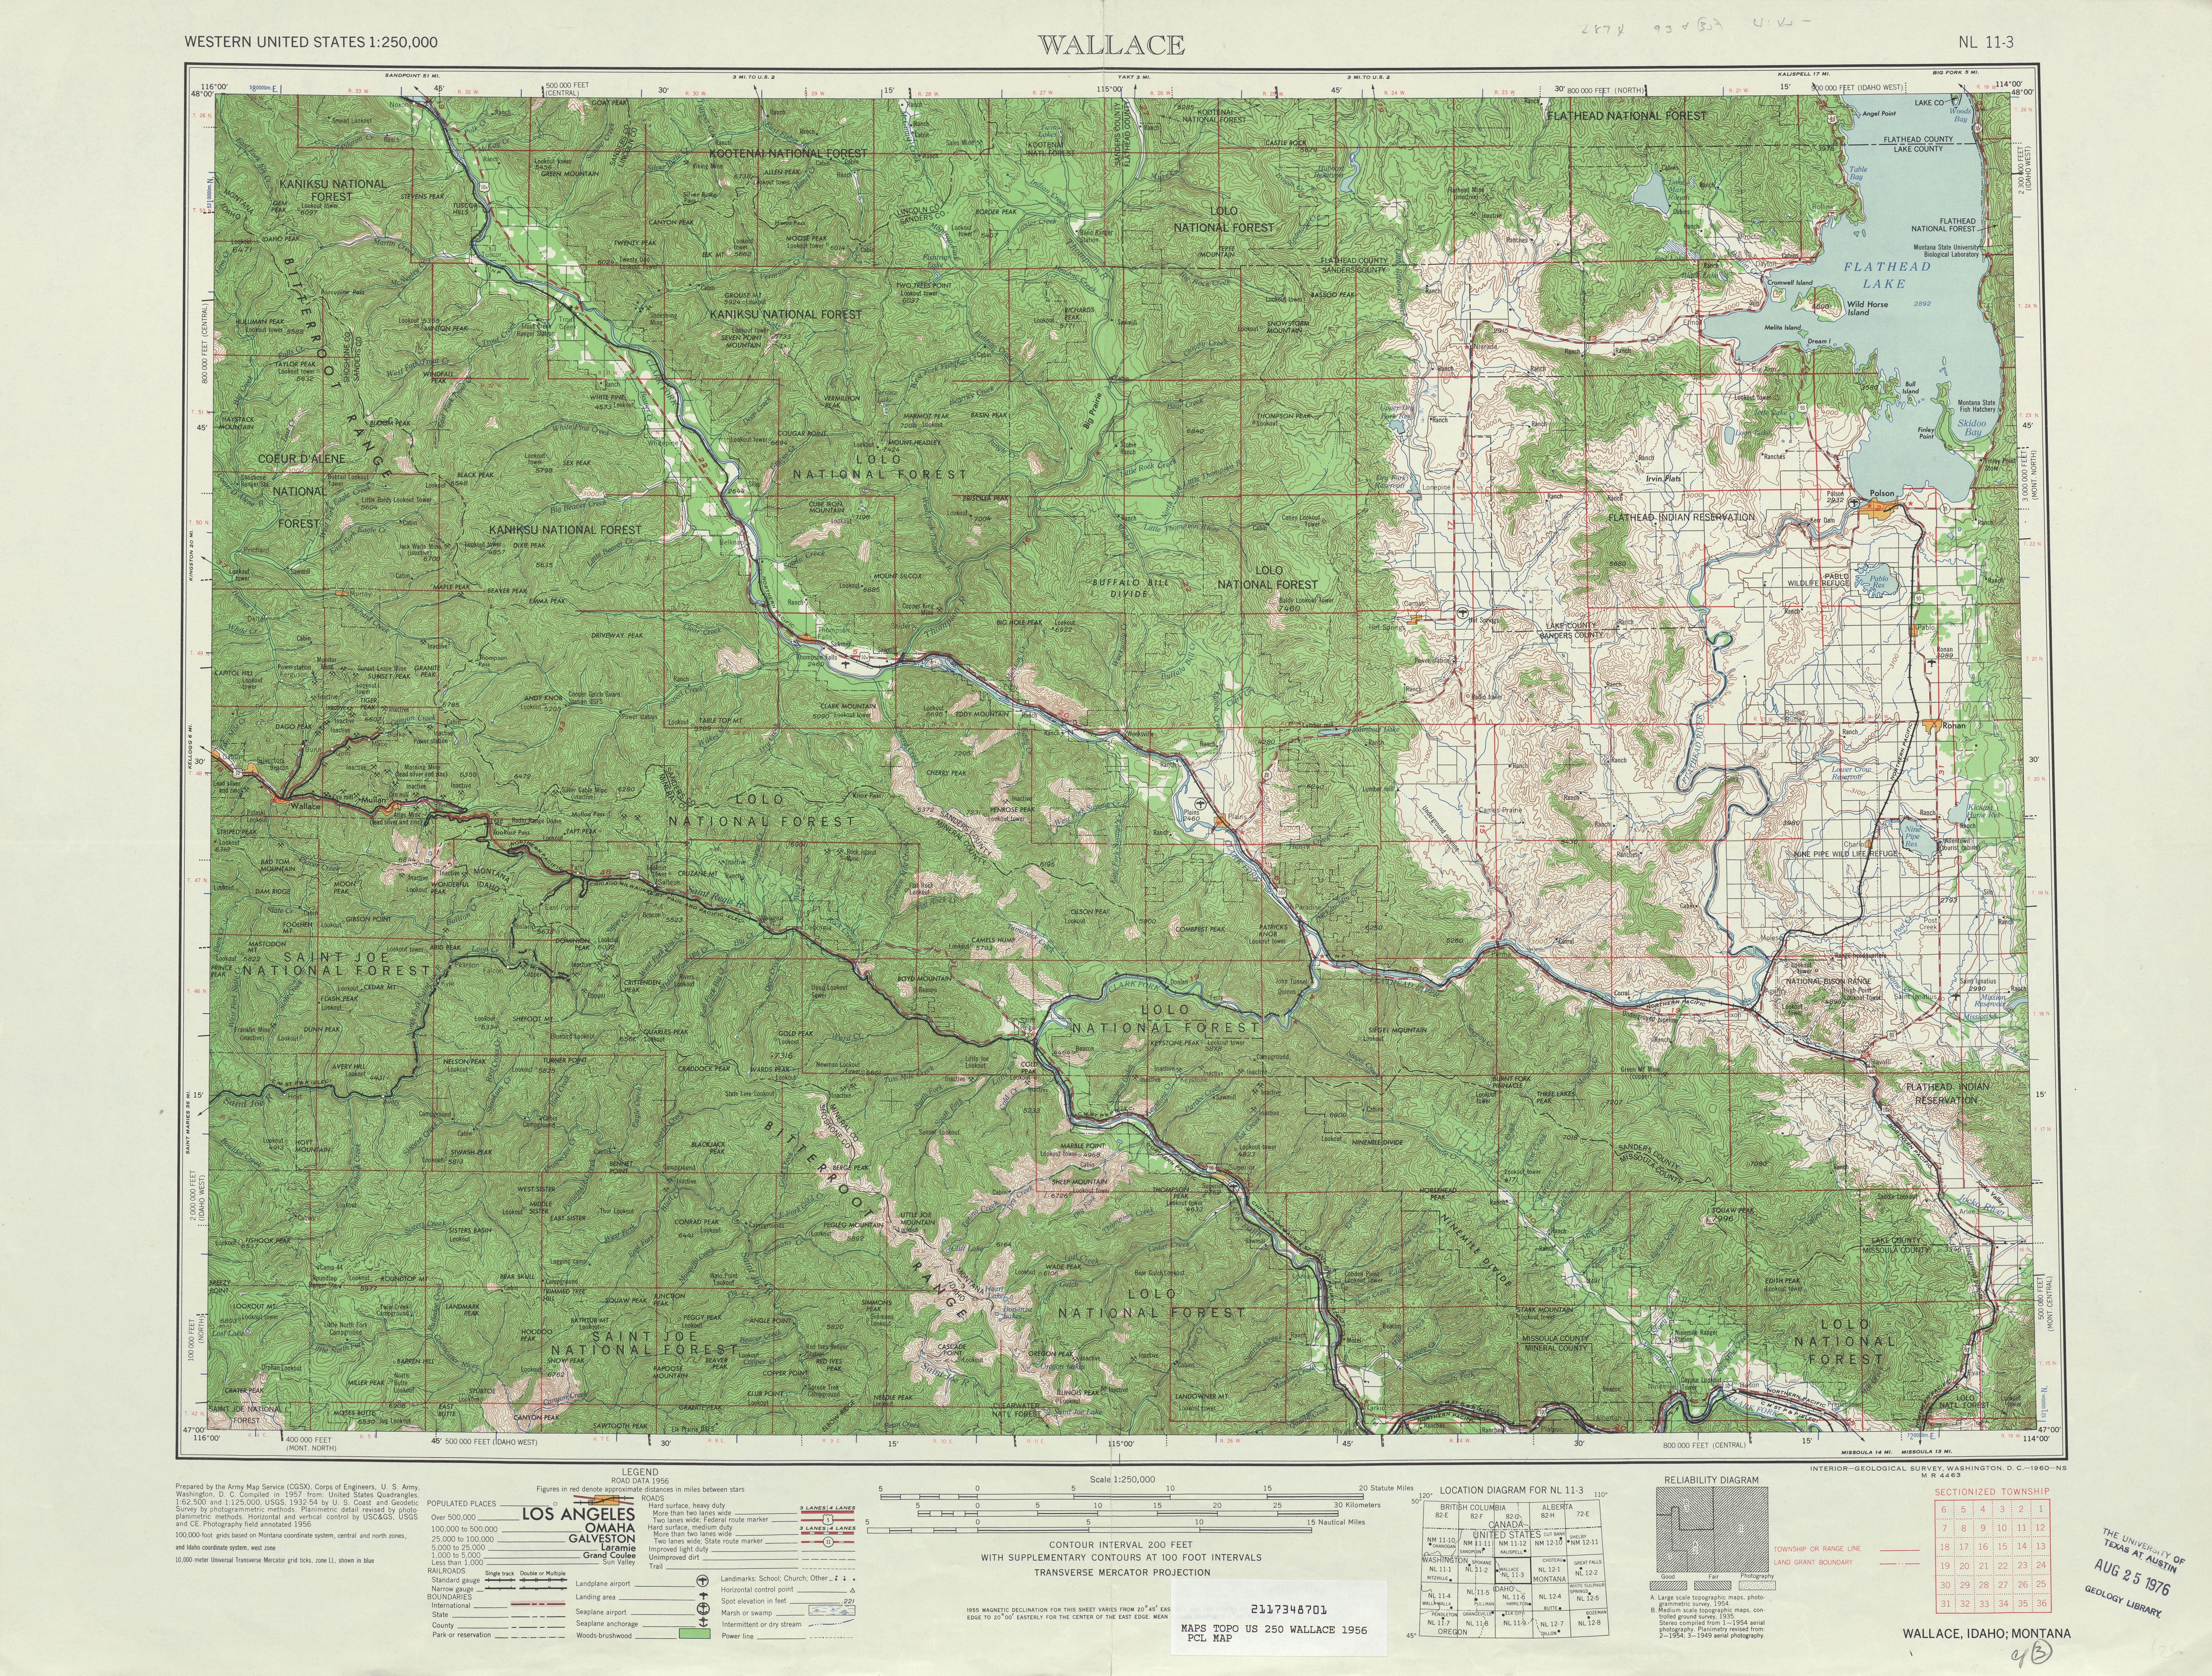 Wallace Topographic Map Sheet, United States 1956